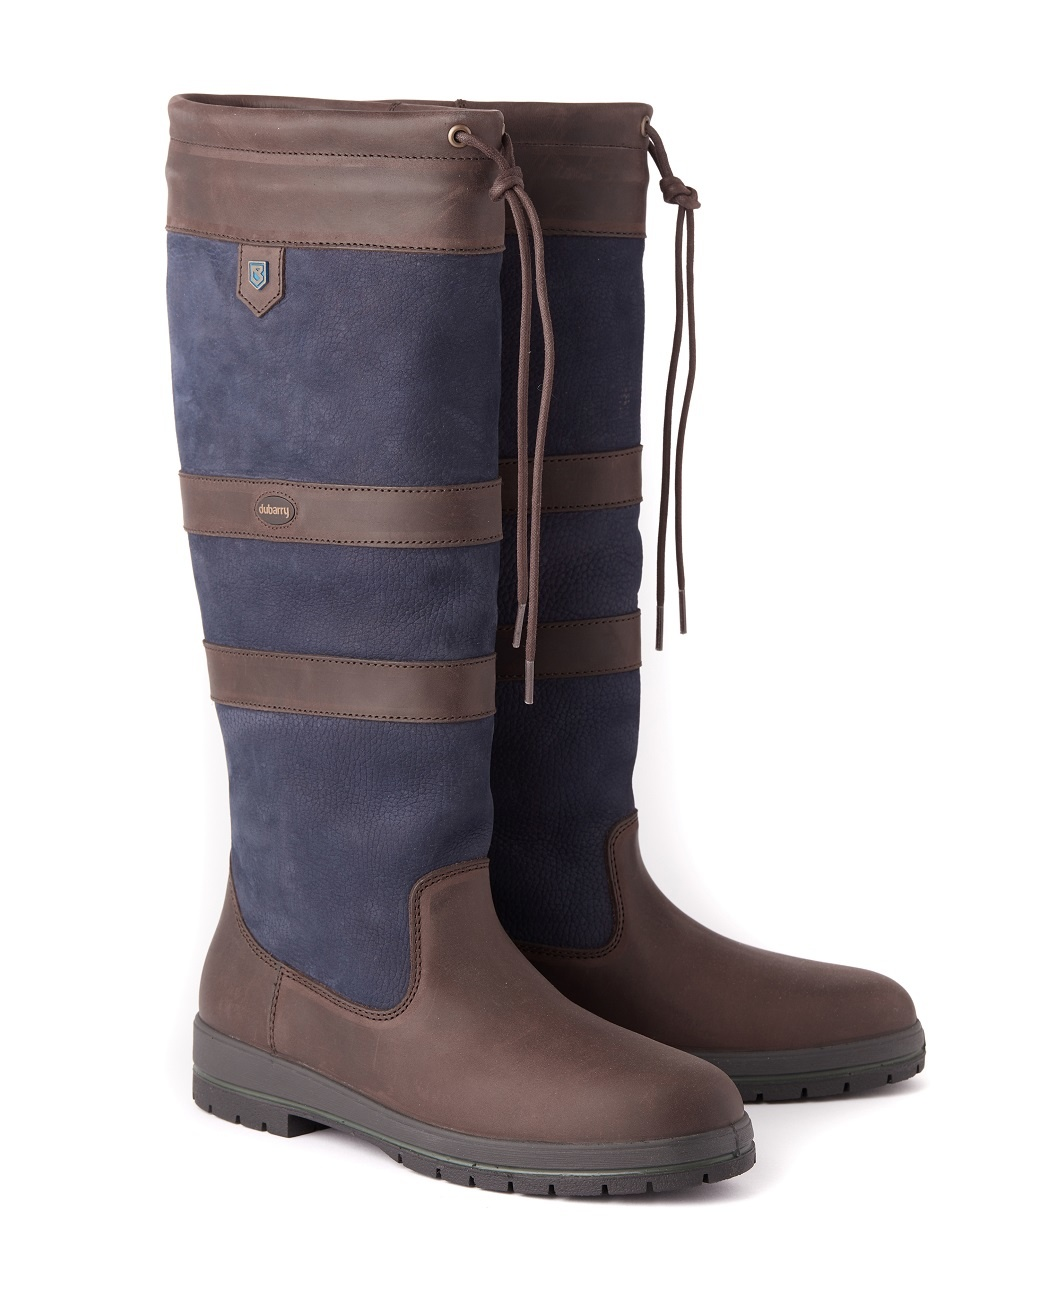 Dubarry Galway RegularFit™ Navy/Brown-1